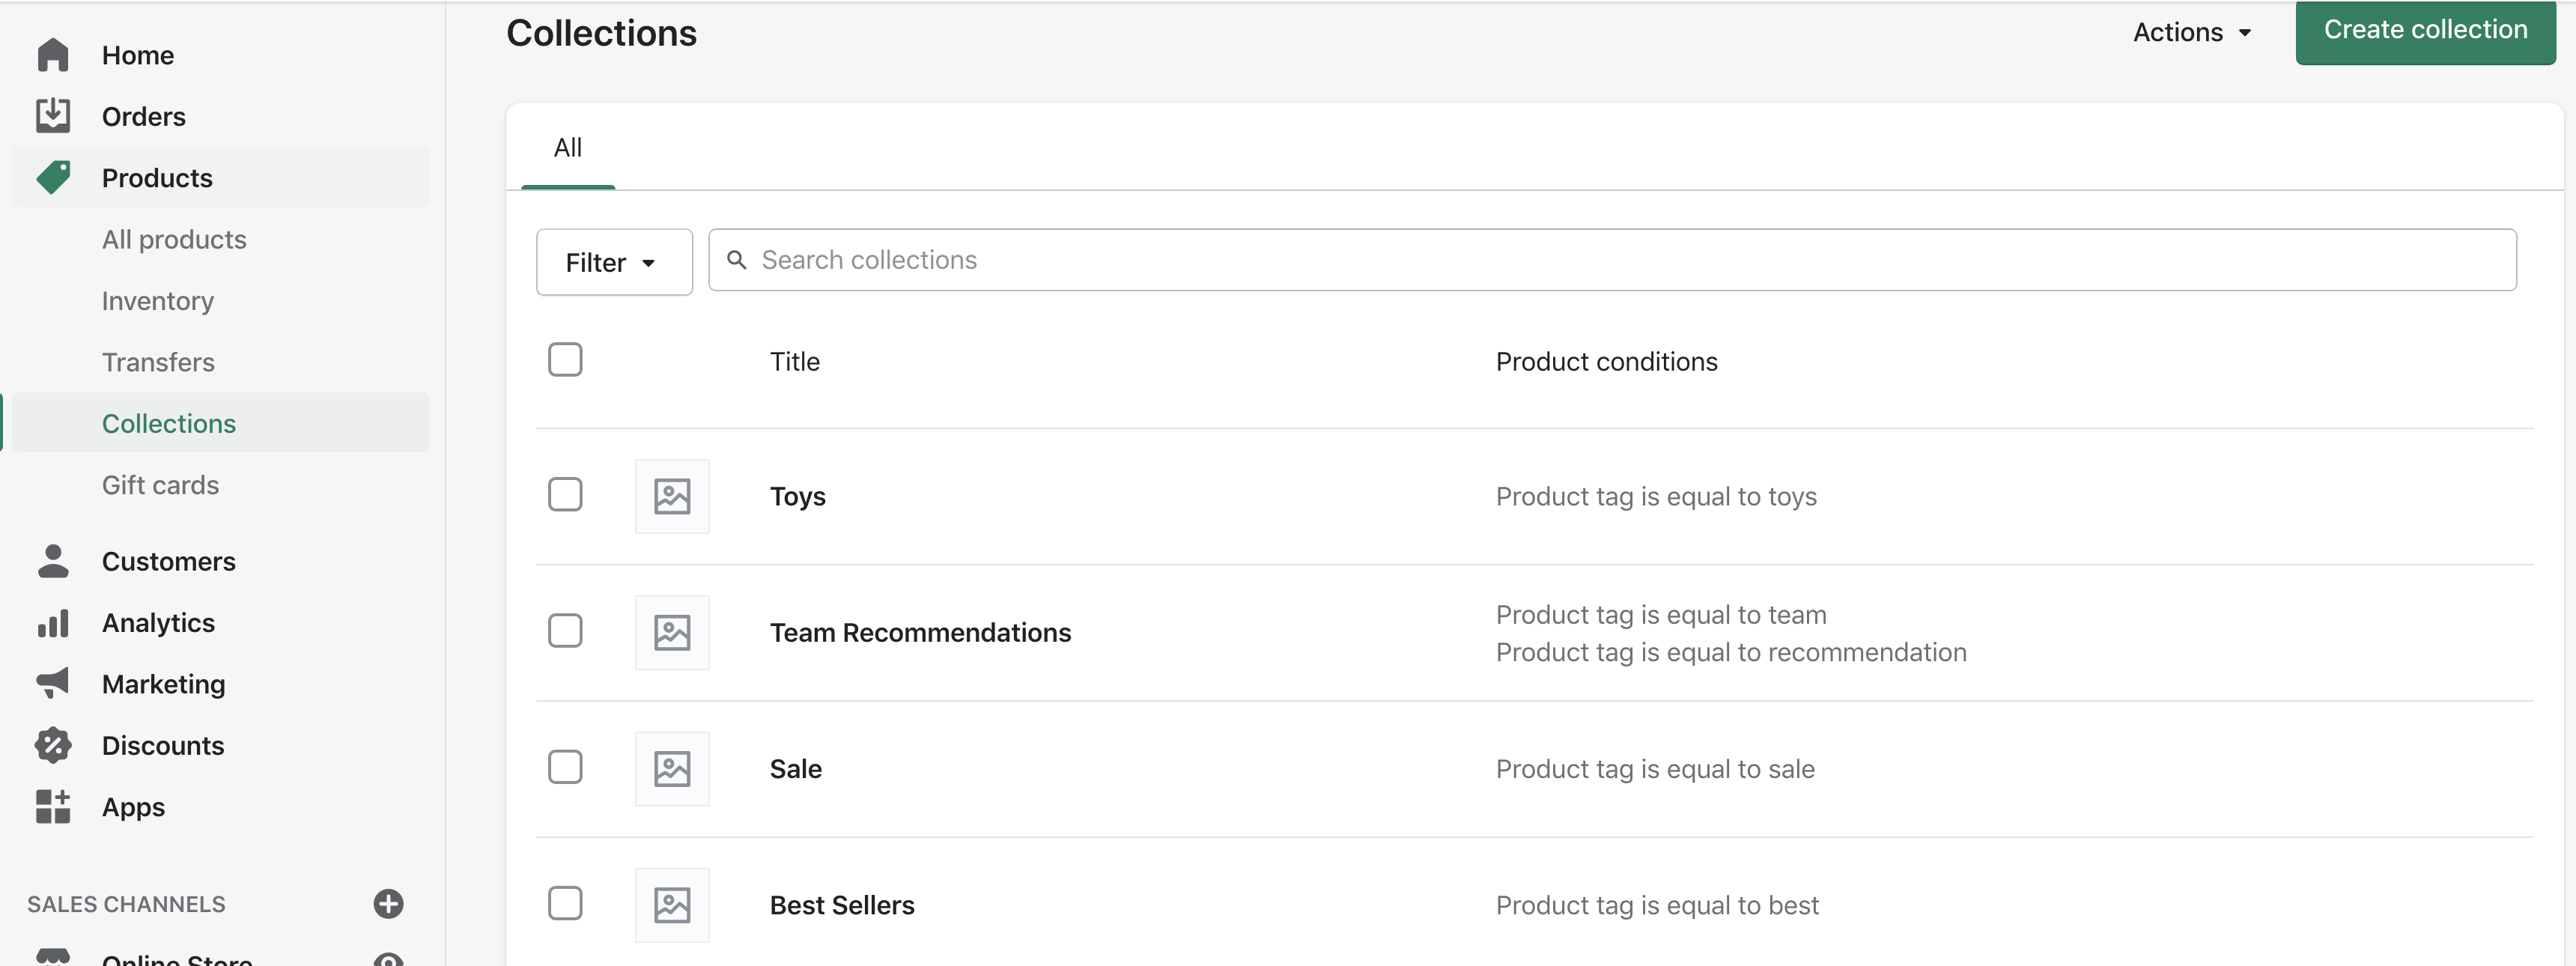 Collections in Shopify